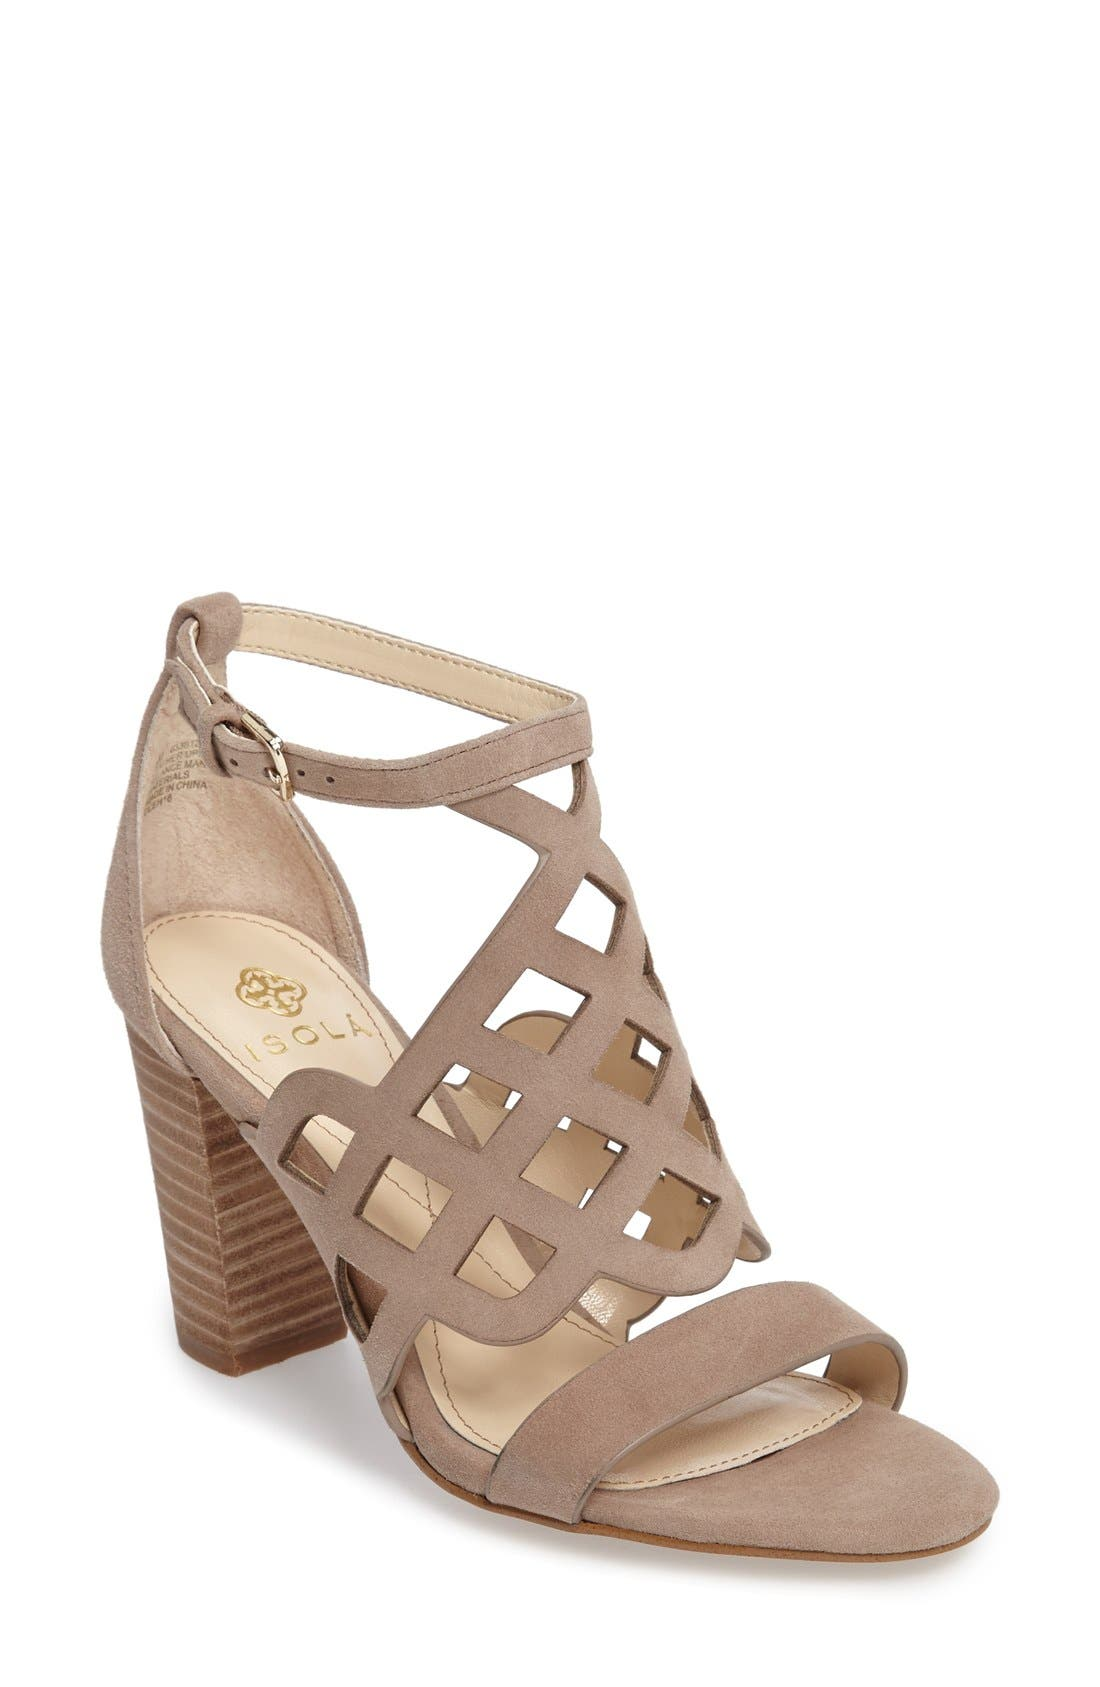 Main Image - Isolá Despina Cutout Ankle Strap Sandal (Women)